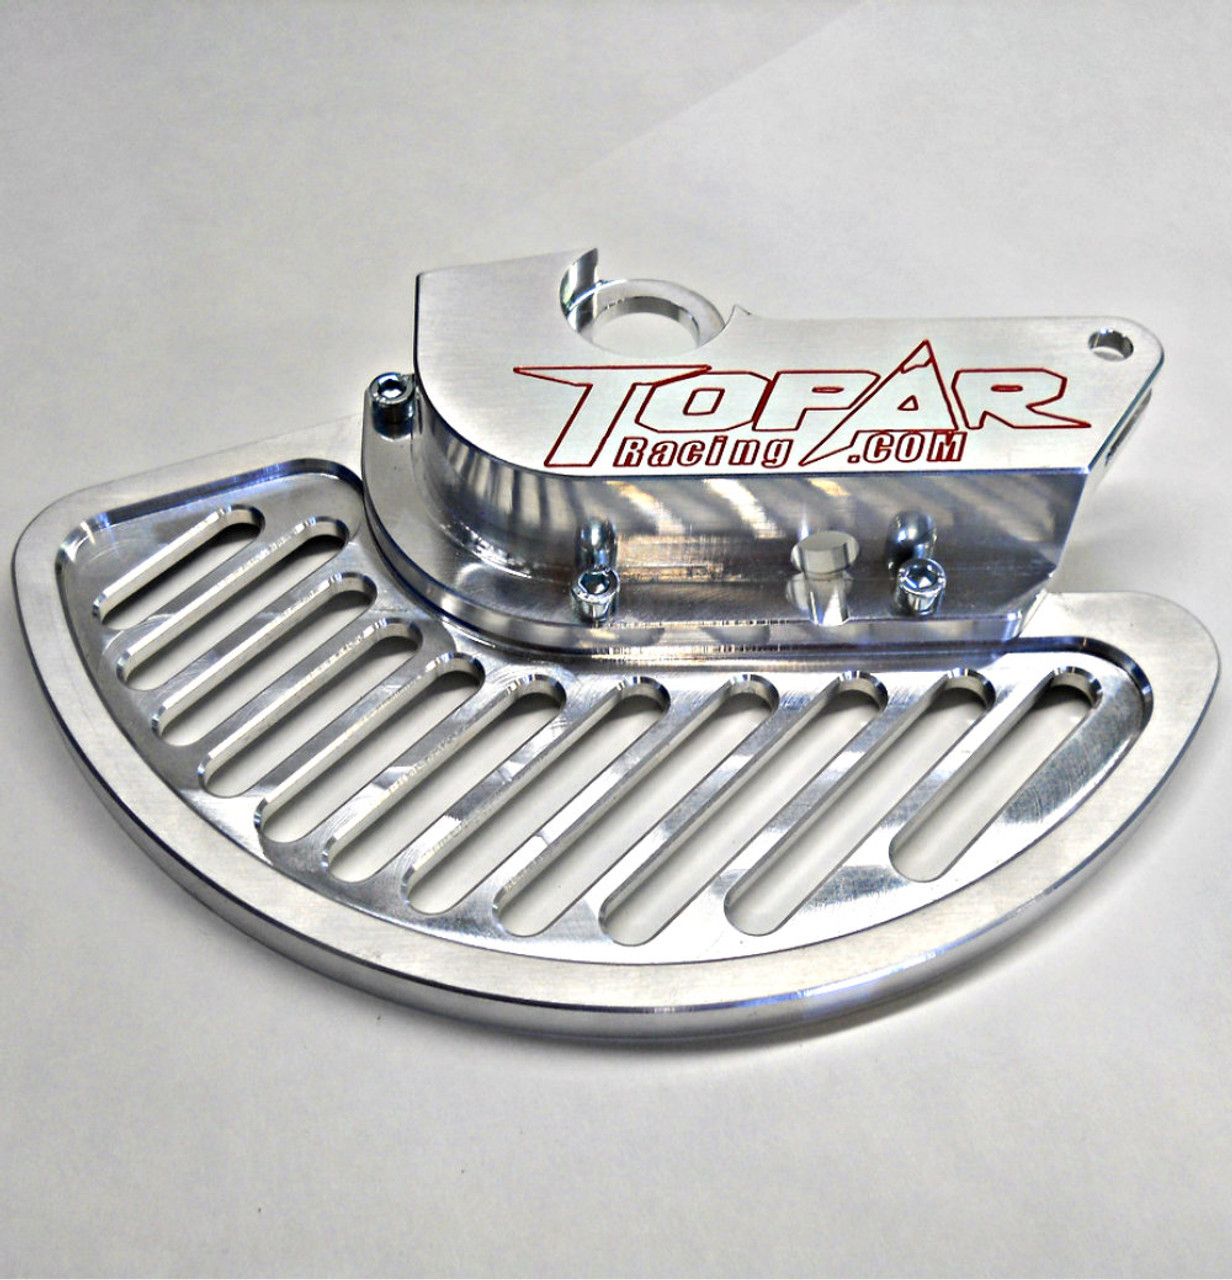 Topar Racing Front Brake Rotor Disc Guard for 2018-2020 BETA - All with KYB or ZF FORKS ONLY  (Guard Shown without Optional Caliper Guard and Aluminum Fin)